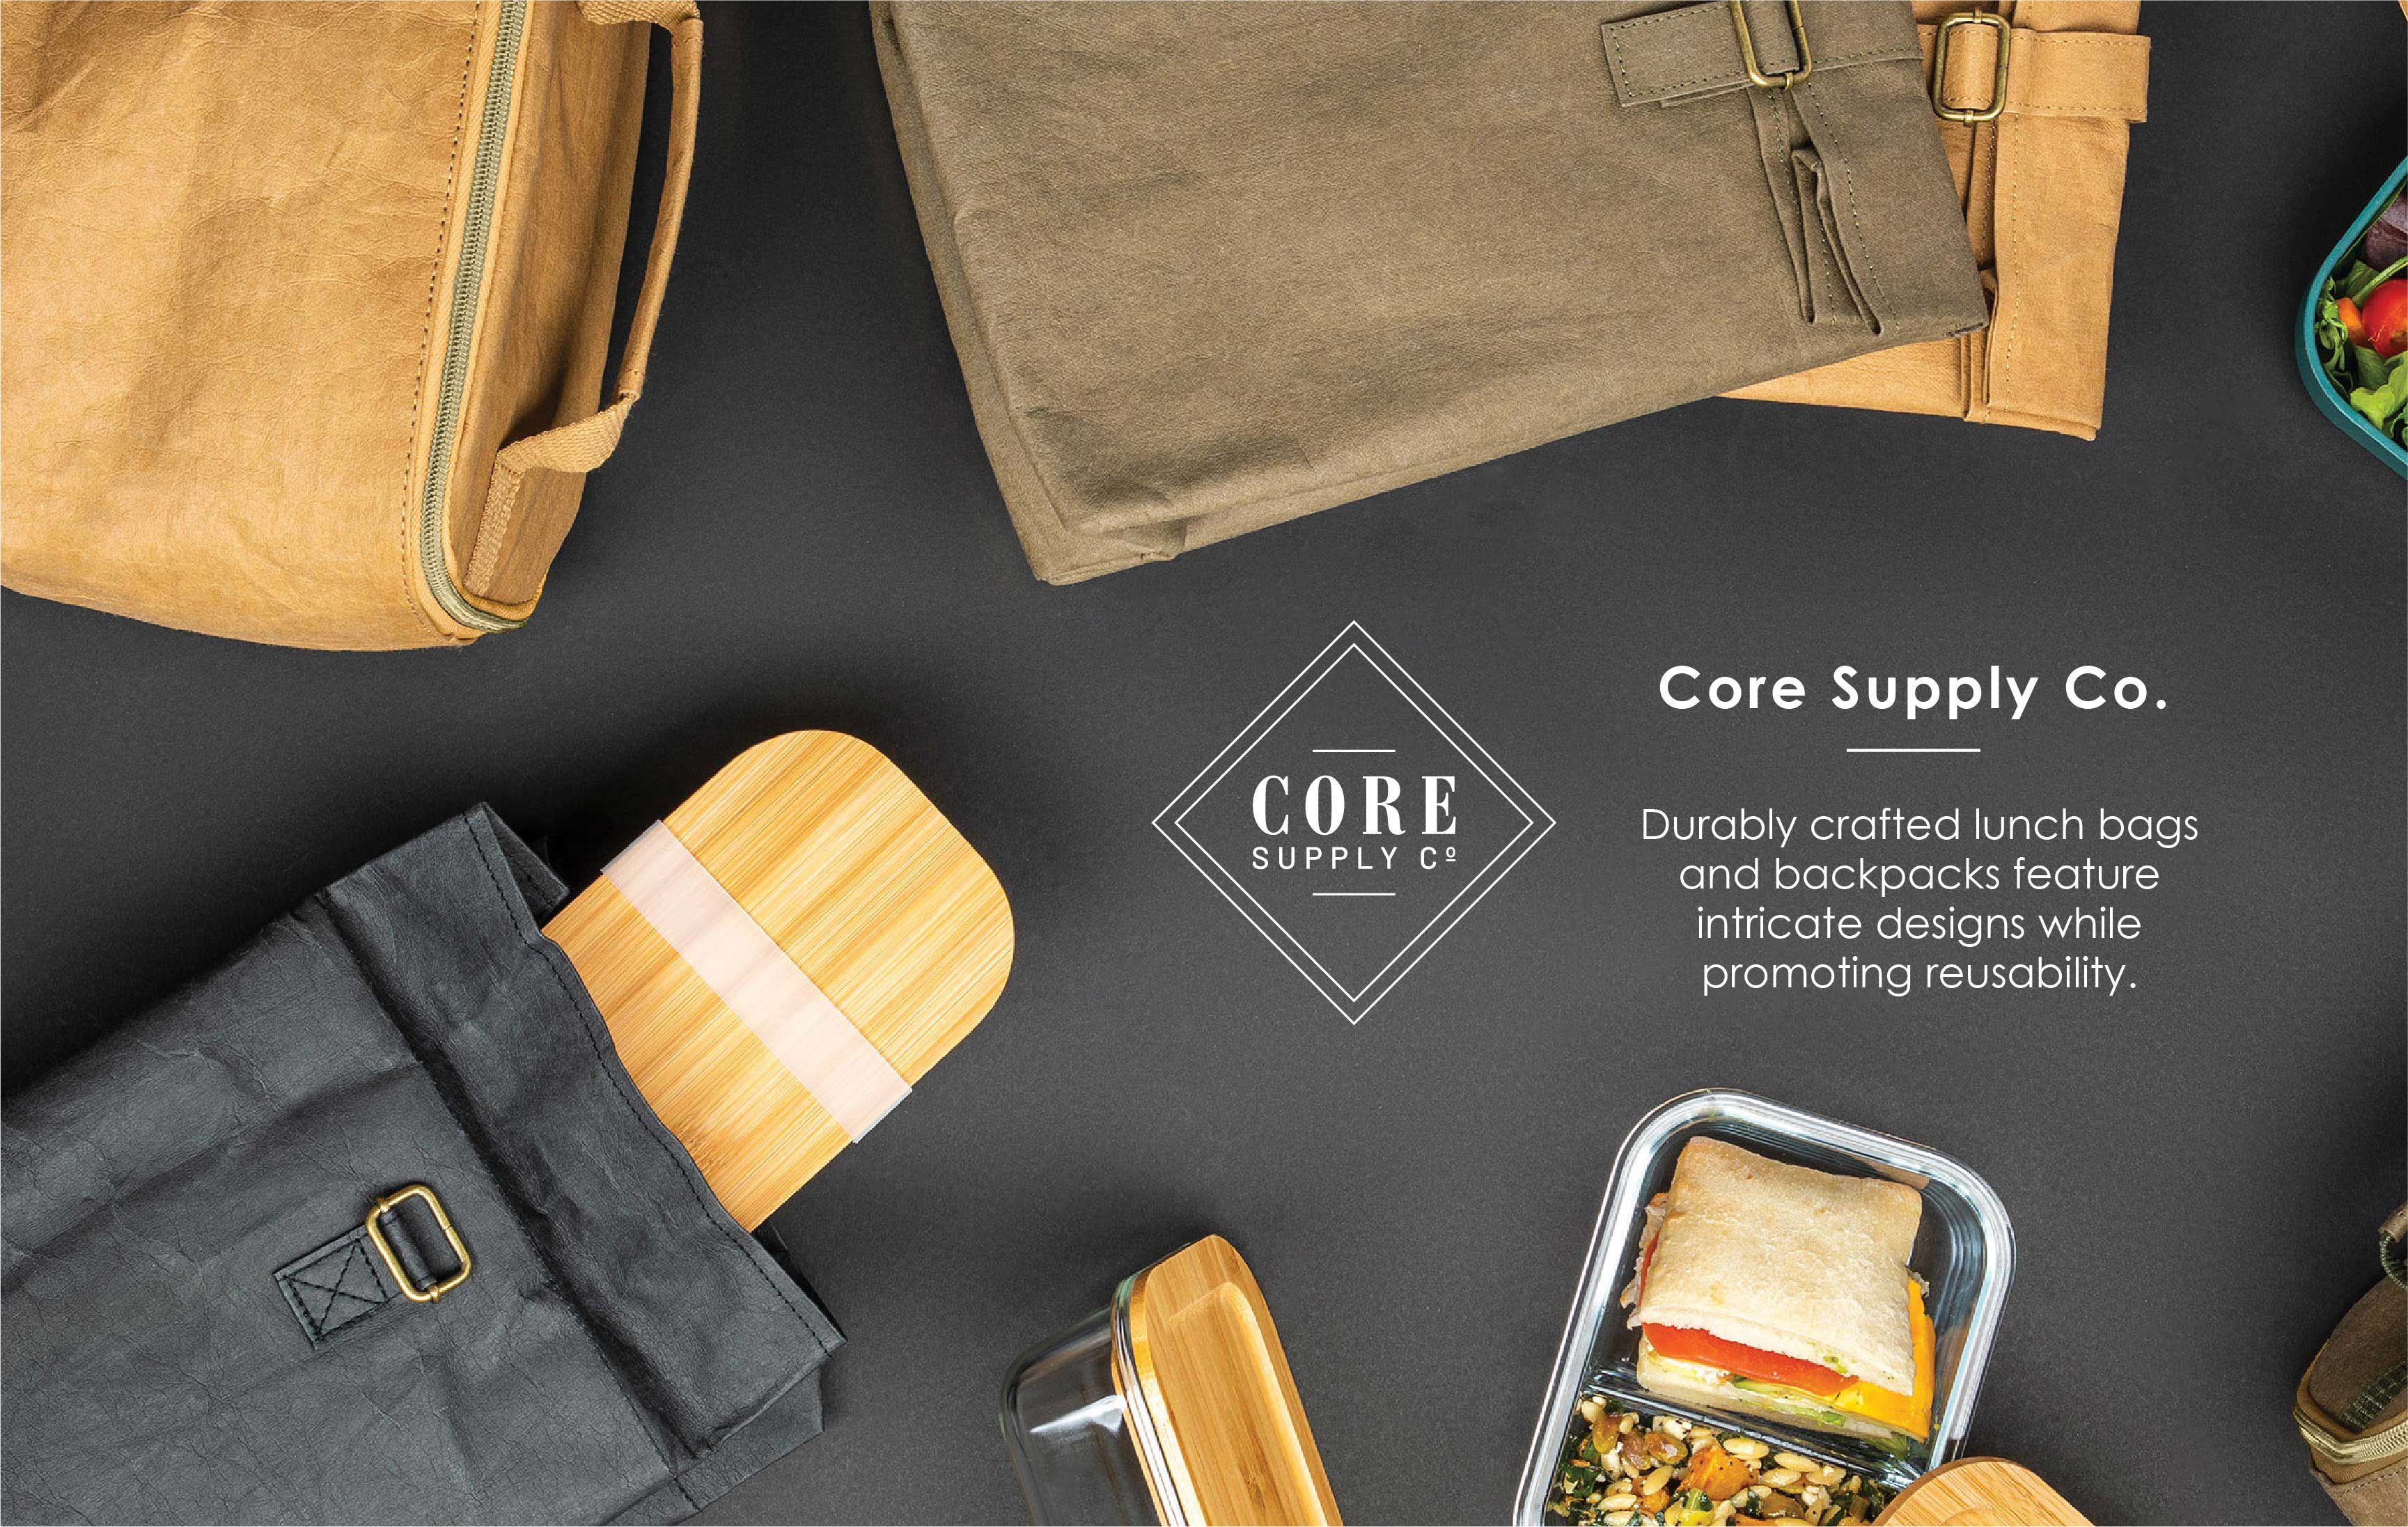 Our_Brand_Core_Supply